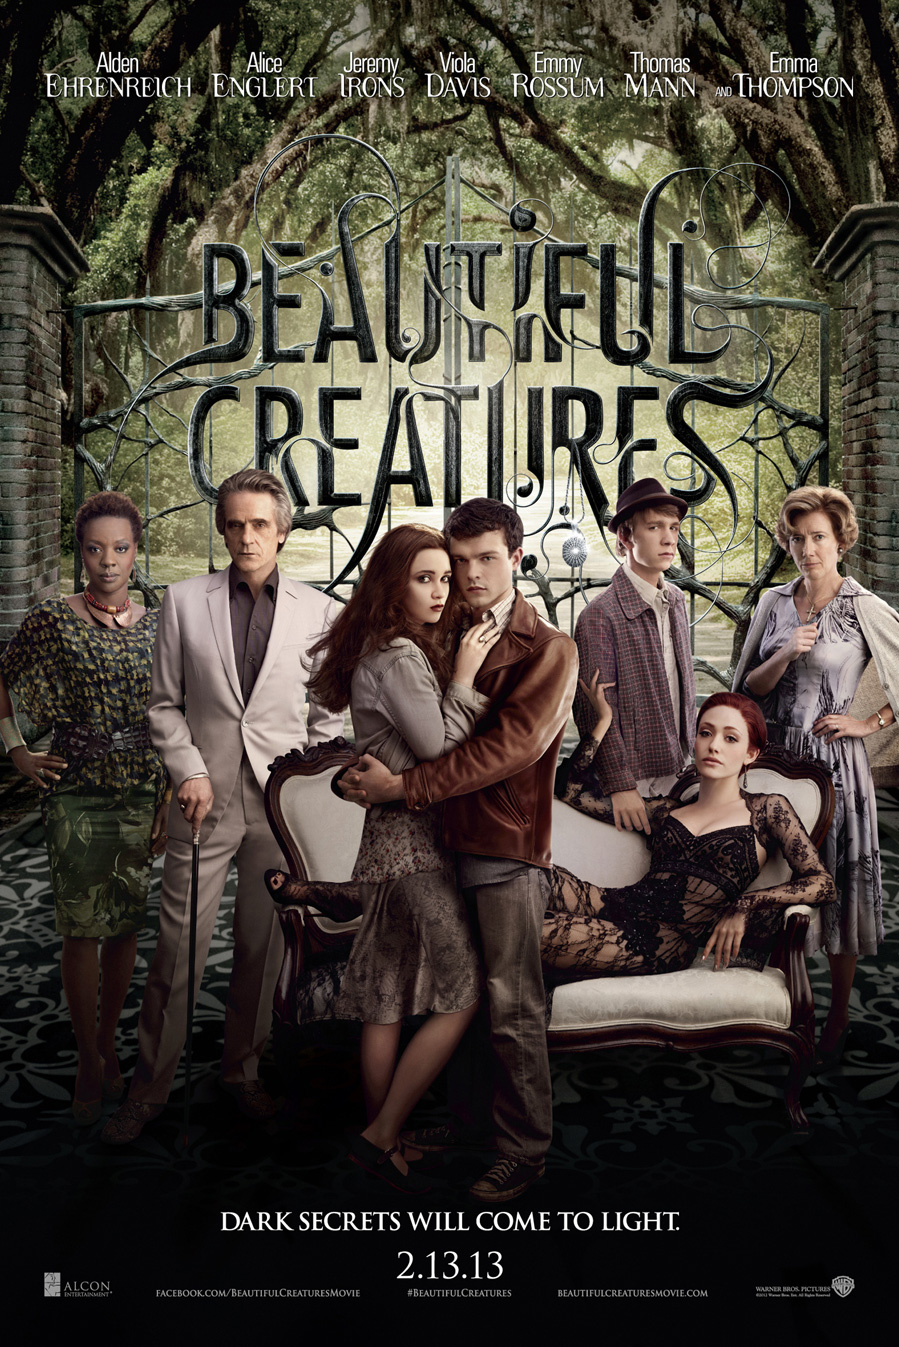 """Theatrical poster for """"Beautiful Creatures"""", featuring the main cast."""